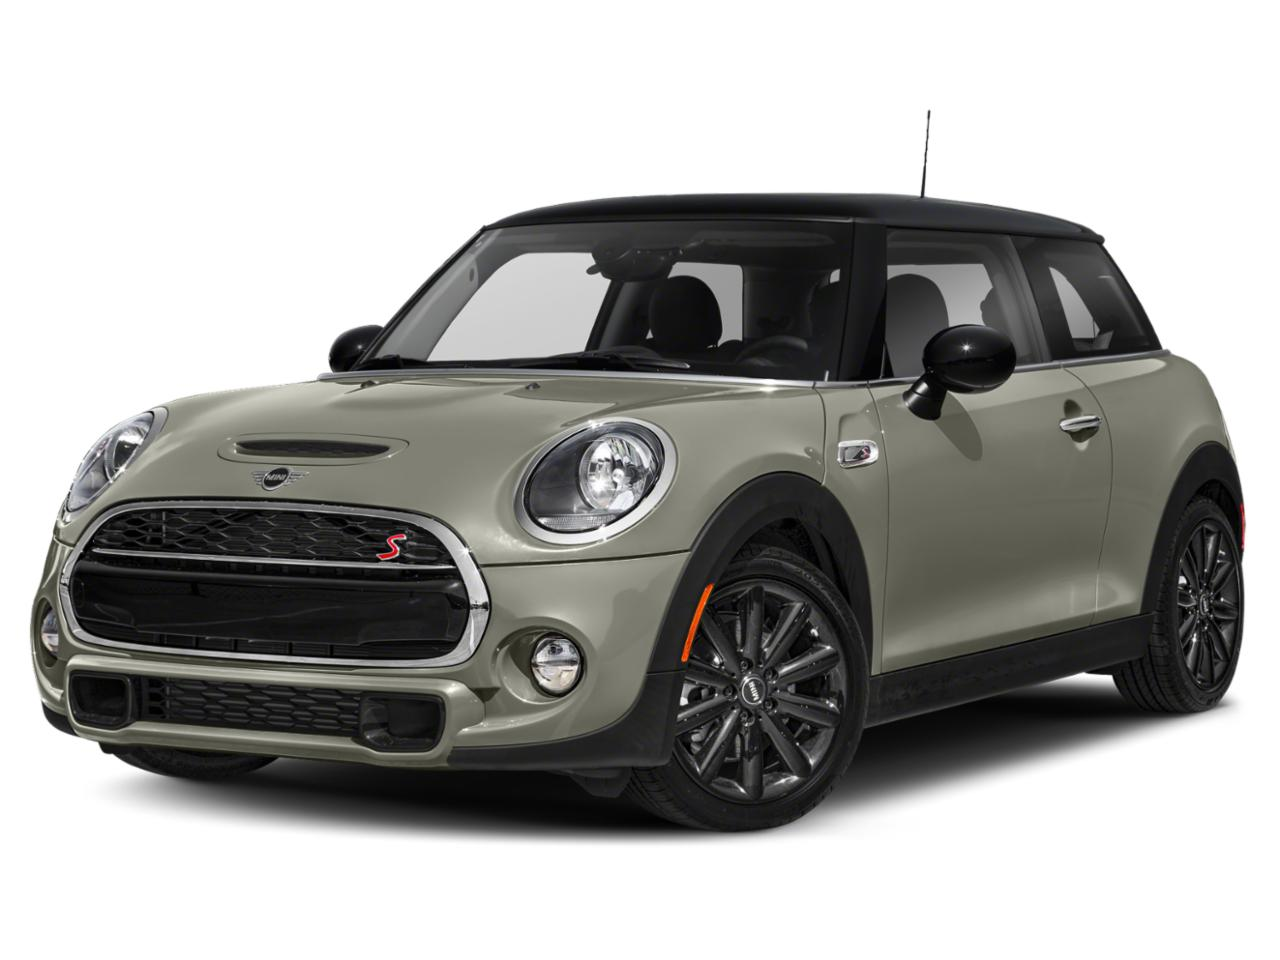 2019 MINI Cooper Hardtop 2 Door Vehicle Photo in Tucson, AZ 85711